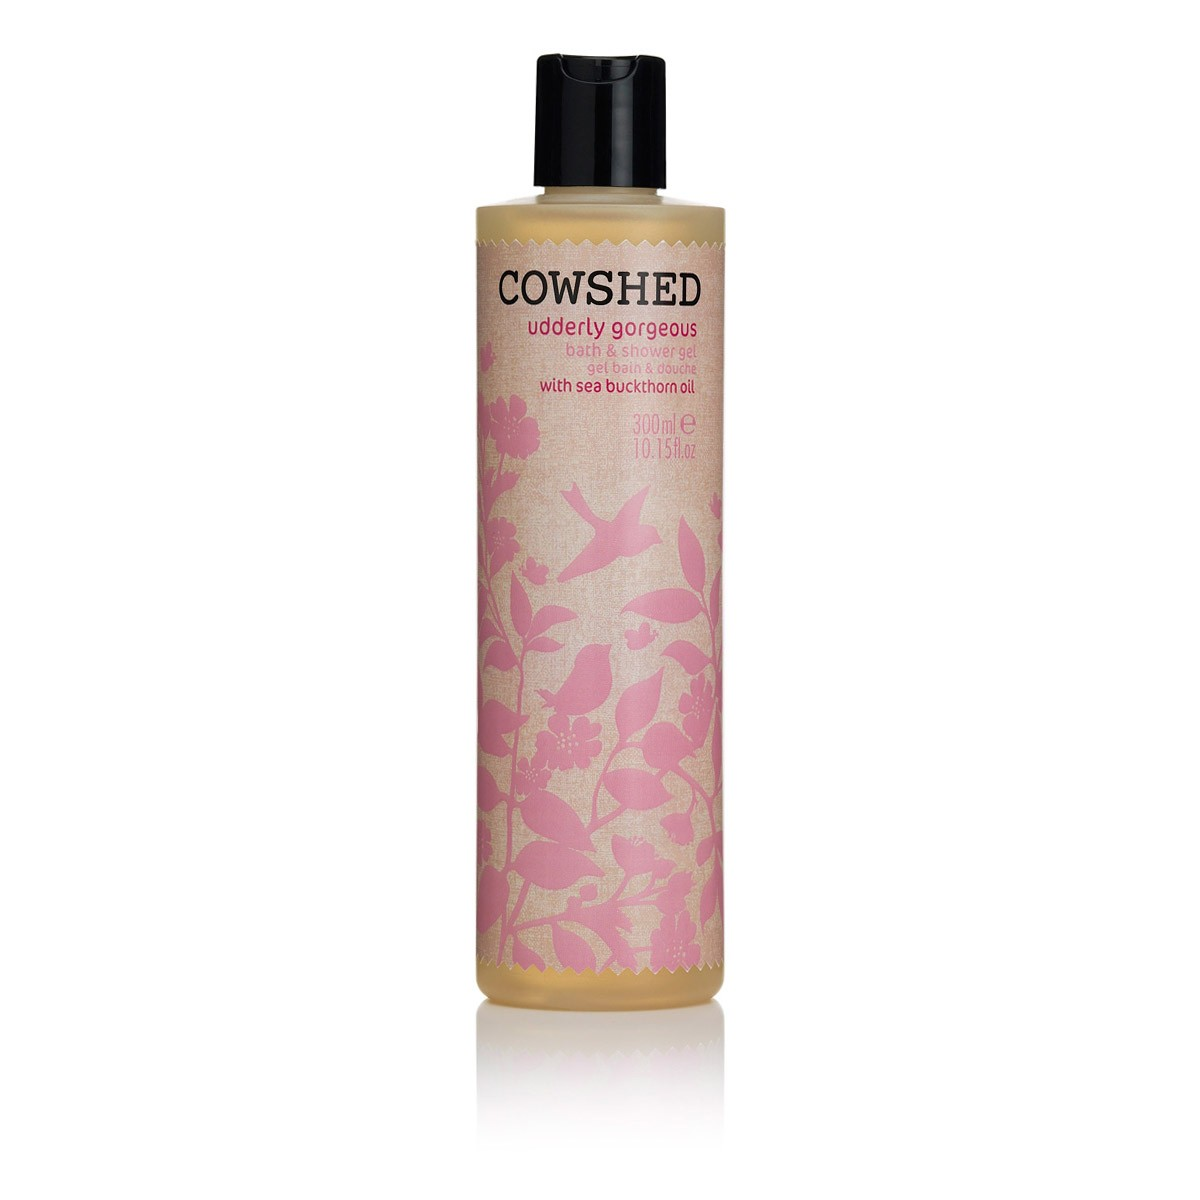 Cowshed Udderly Gorgeous Bath and Shower Gel